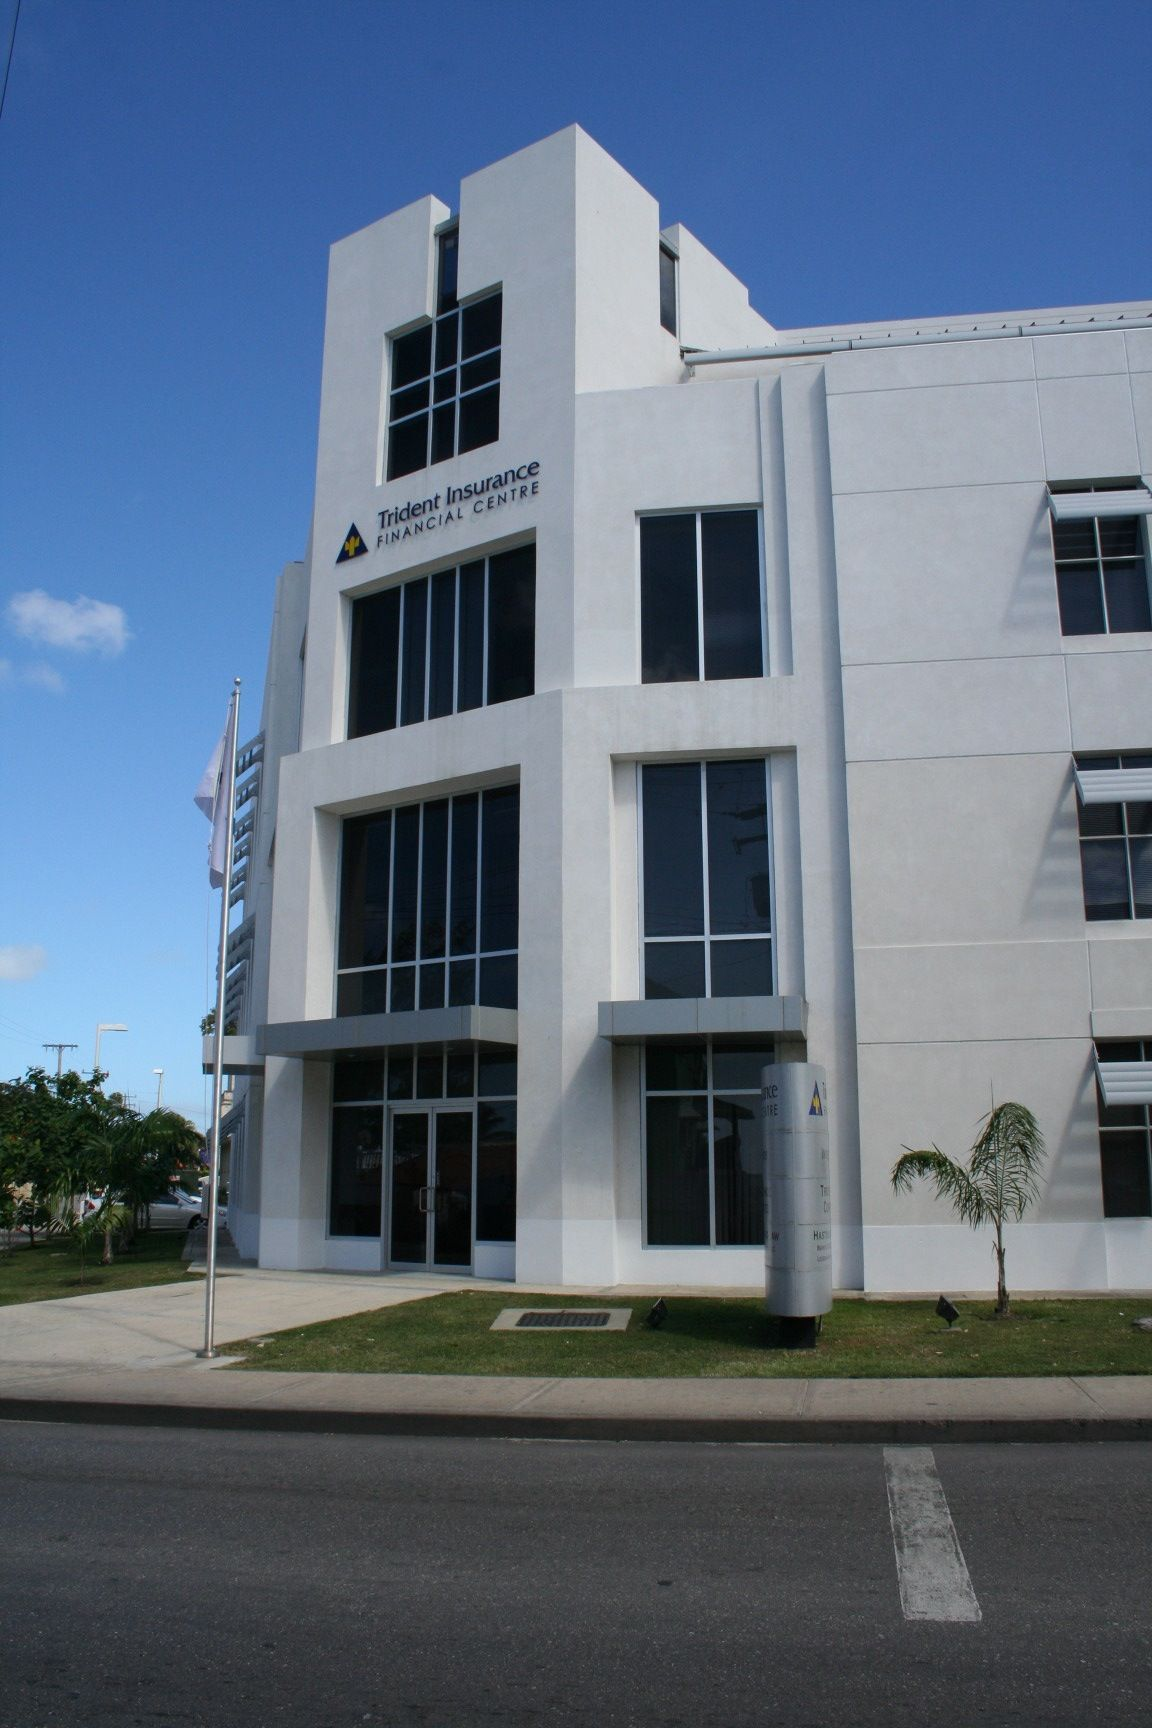 Trident Insurance Building Hastings Christ Church Barbados